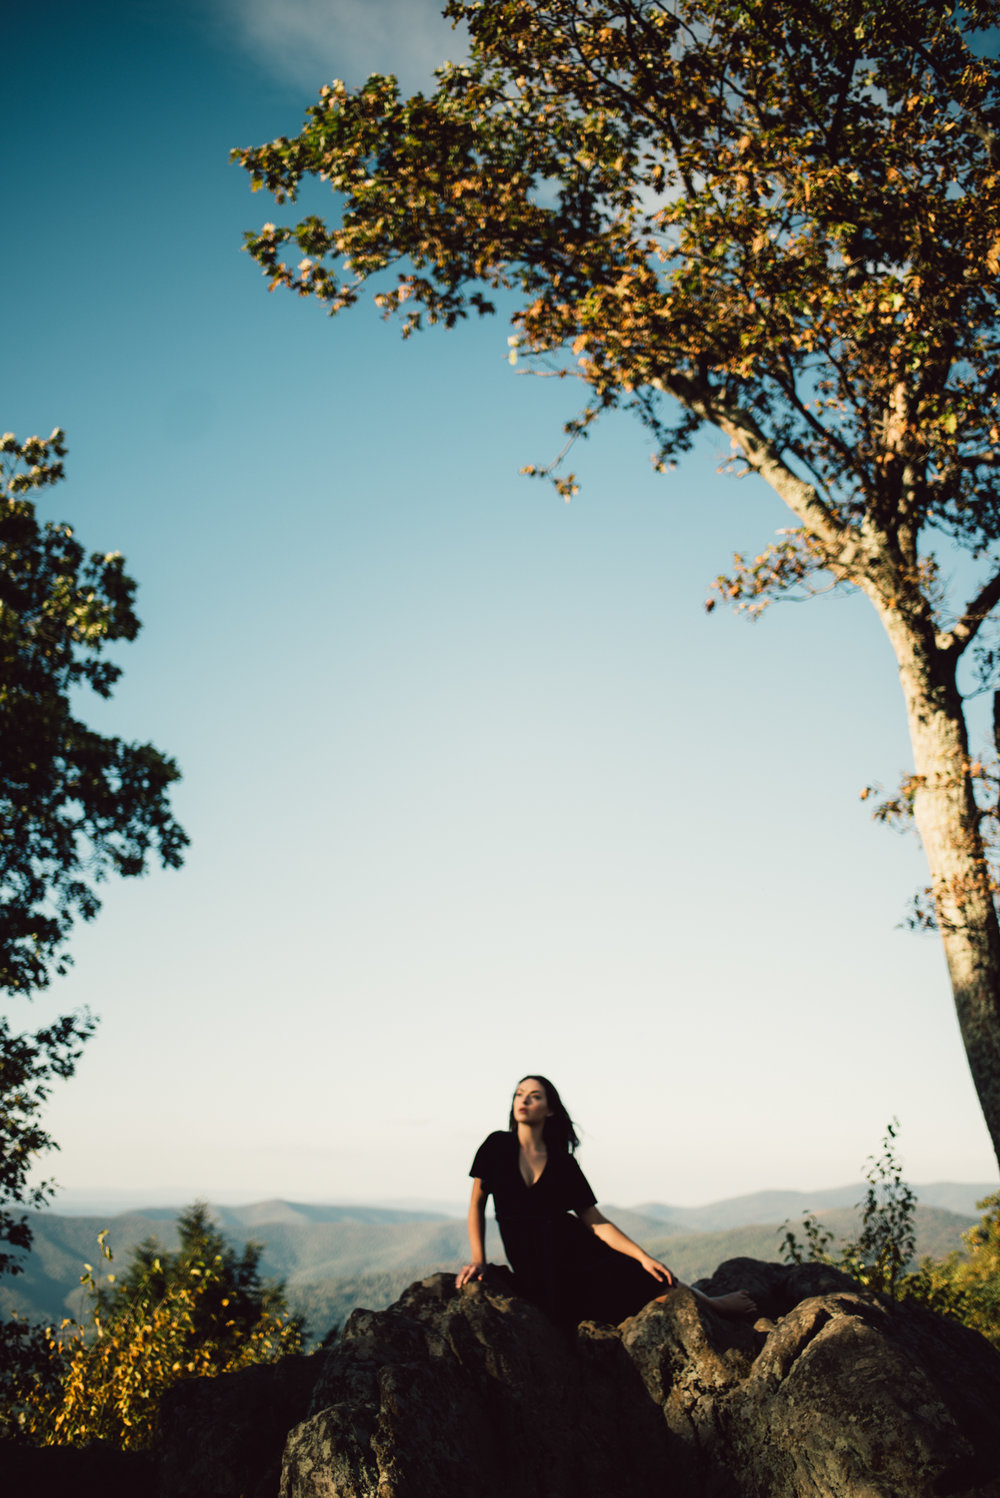 Megan_Shenandoah_National_Park_Windy_Romantic_Portraits_67.JPG